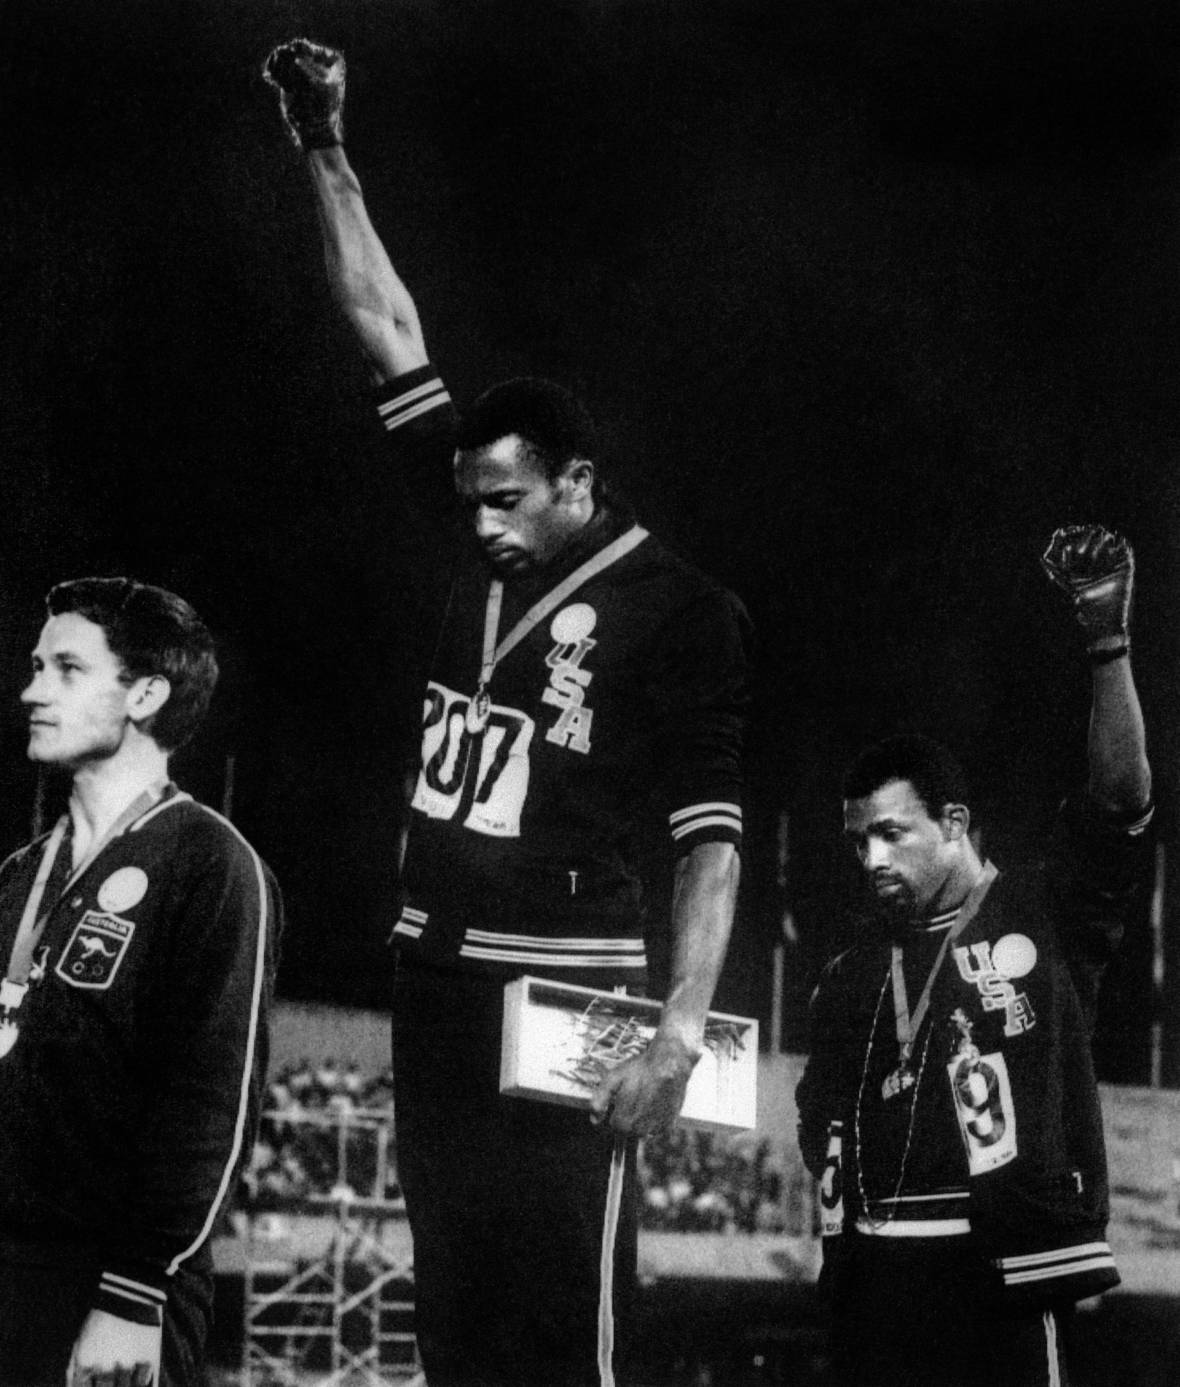 50 Years On, the Olympic Power Salute of 1968 Gets Its Due Respect